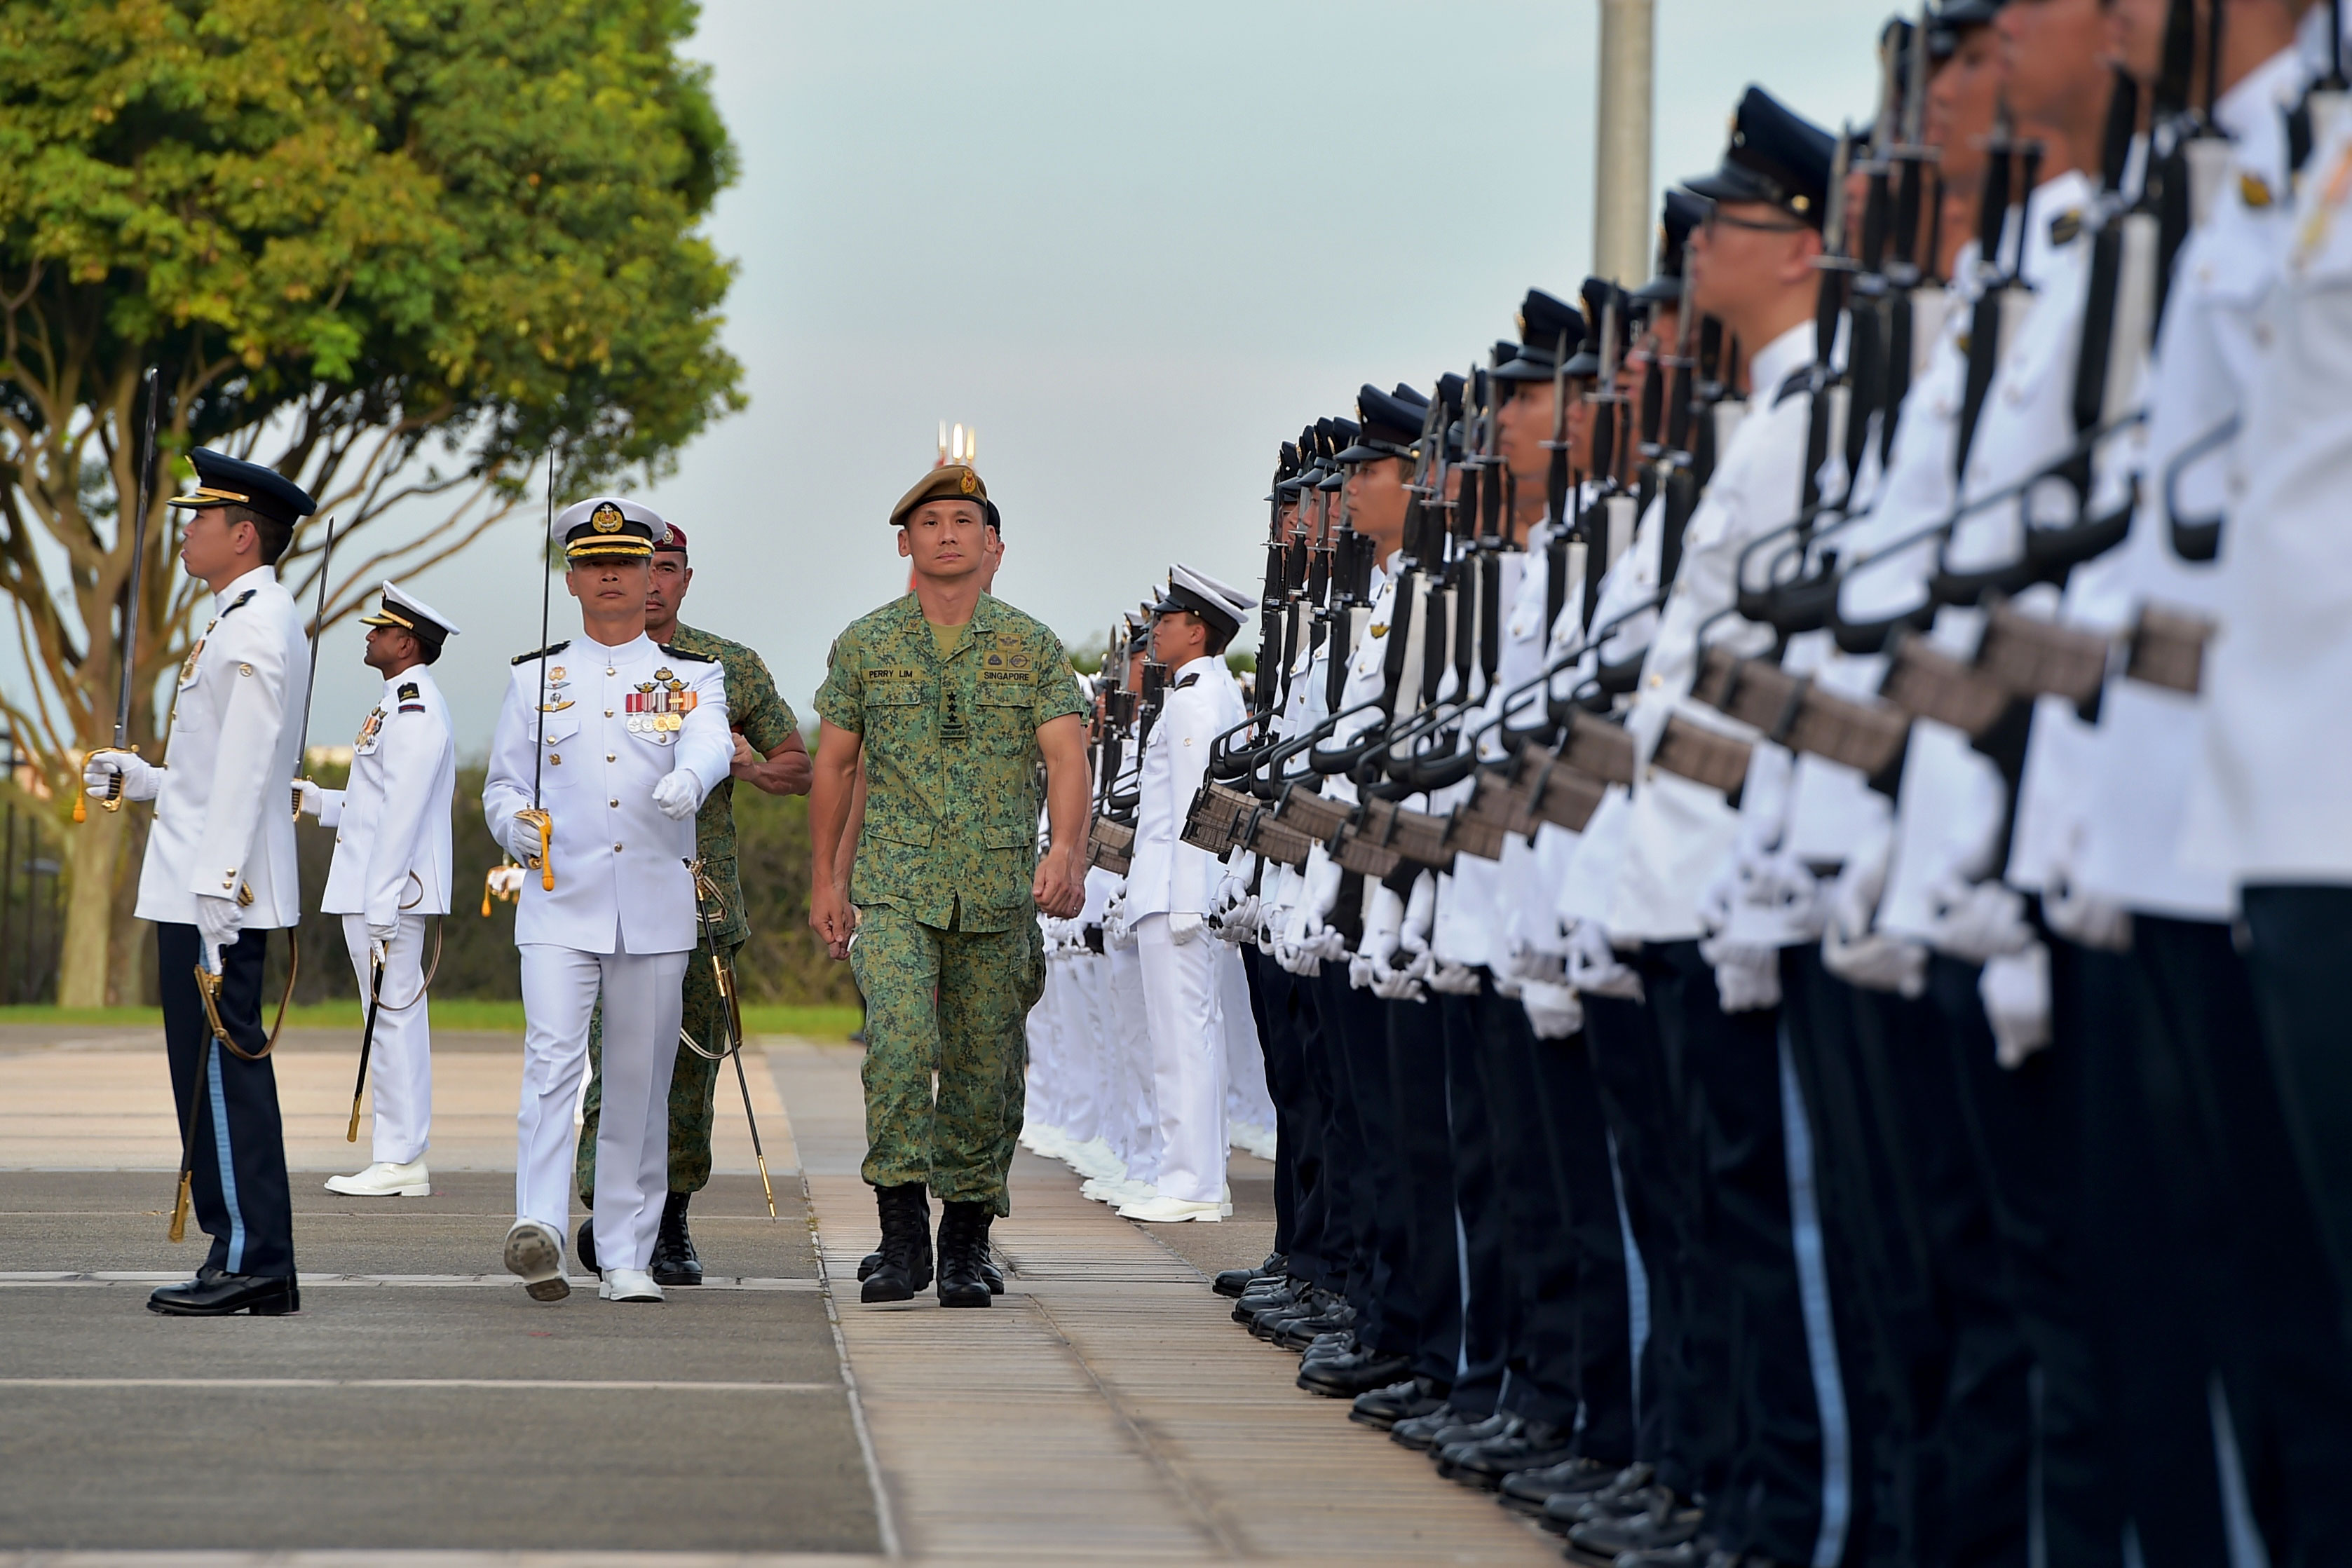 LG Lim inspecting the Guard of Honour contingent.